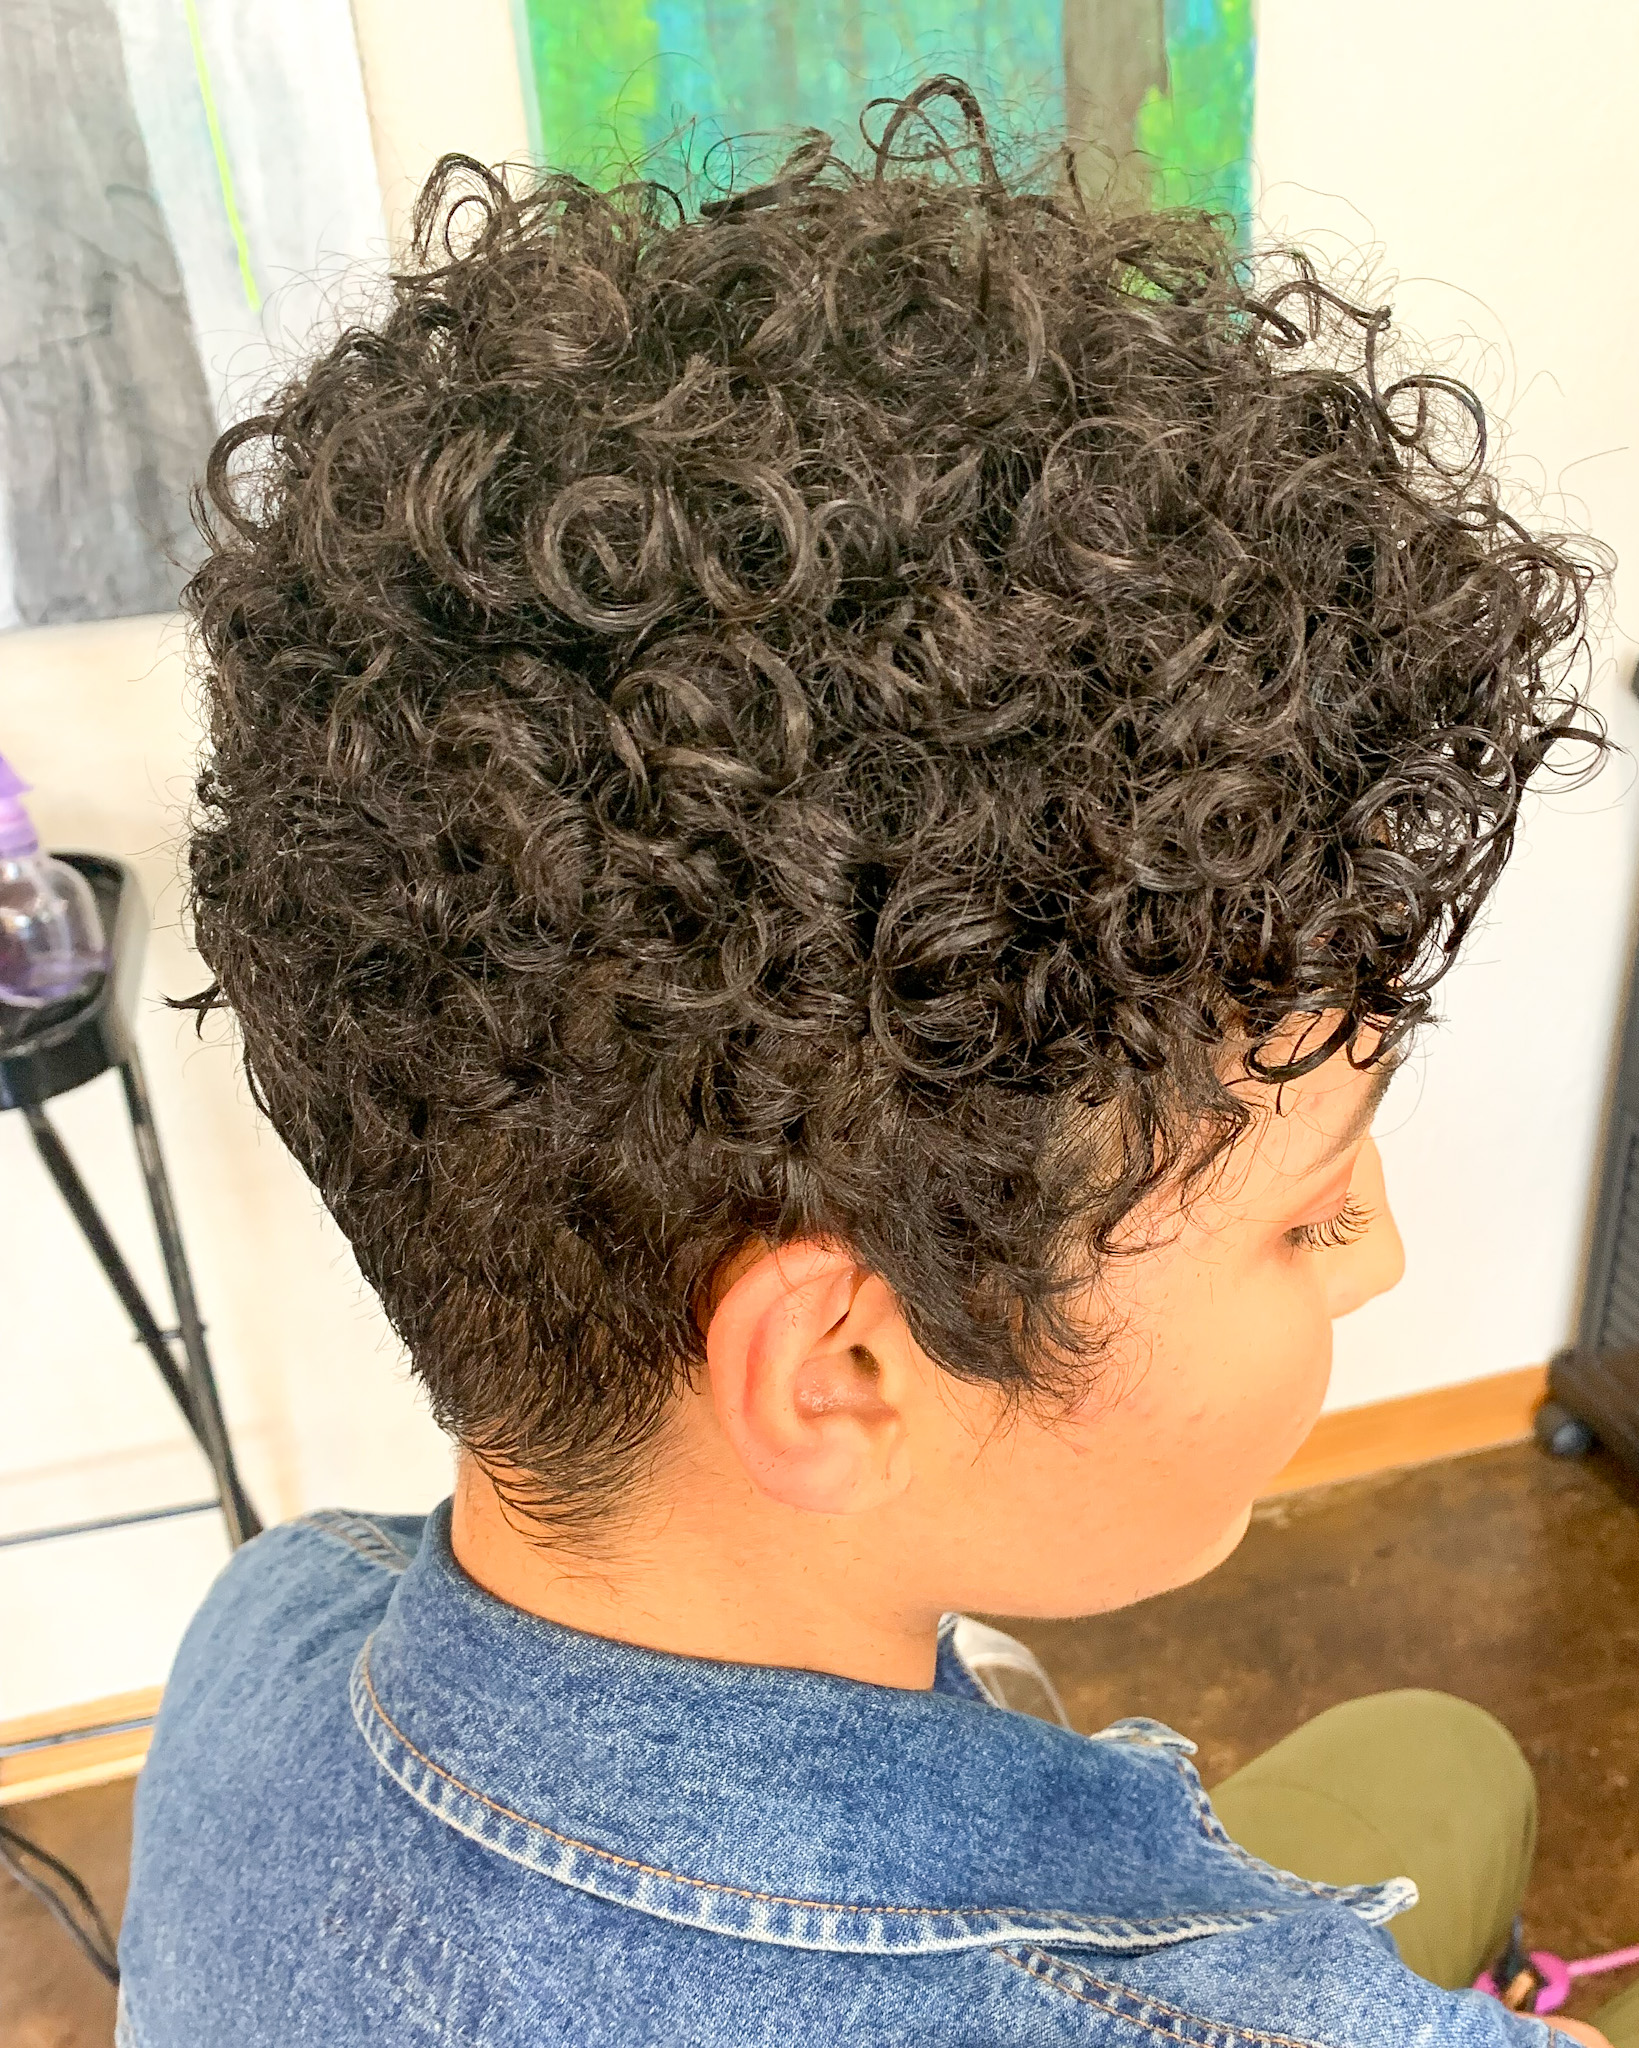 https://i0.wp.com/lylesstyles.com/wp-content/uploads/2020/05/Haircut-1.jpg?fit=1639%2C2048&ssl=1